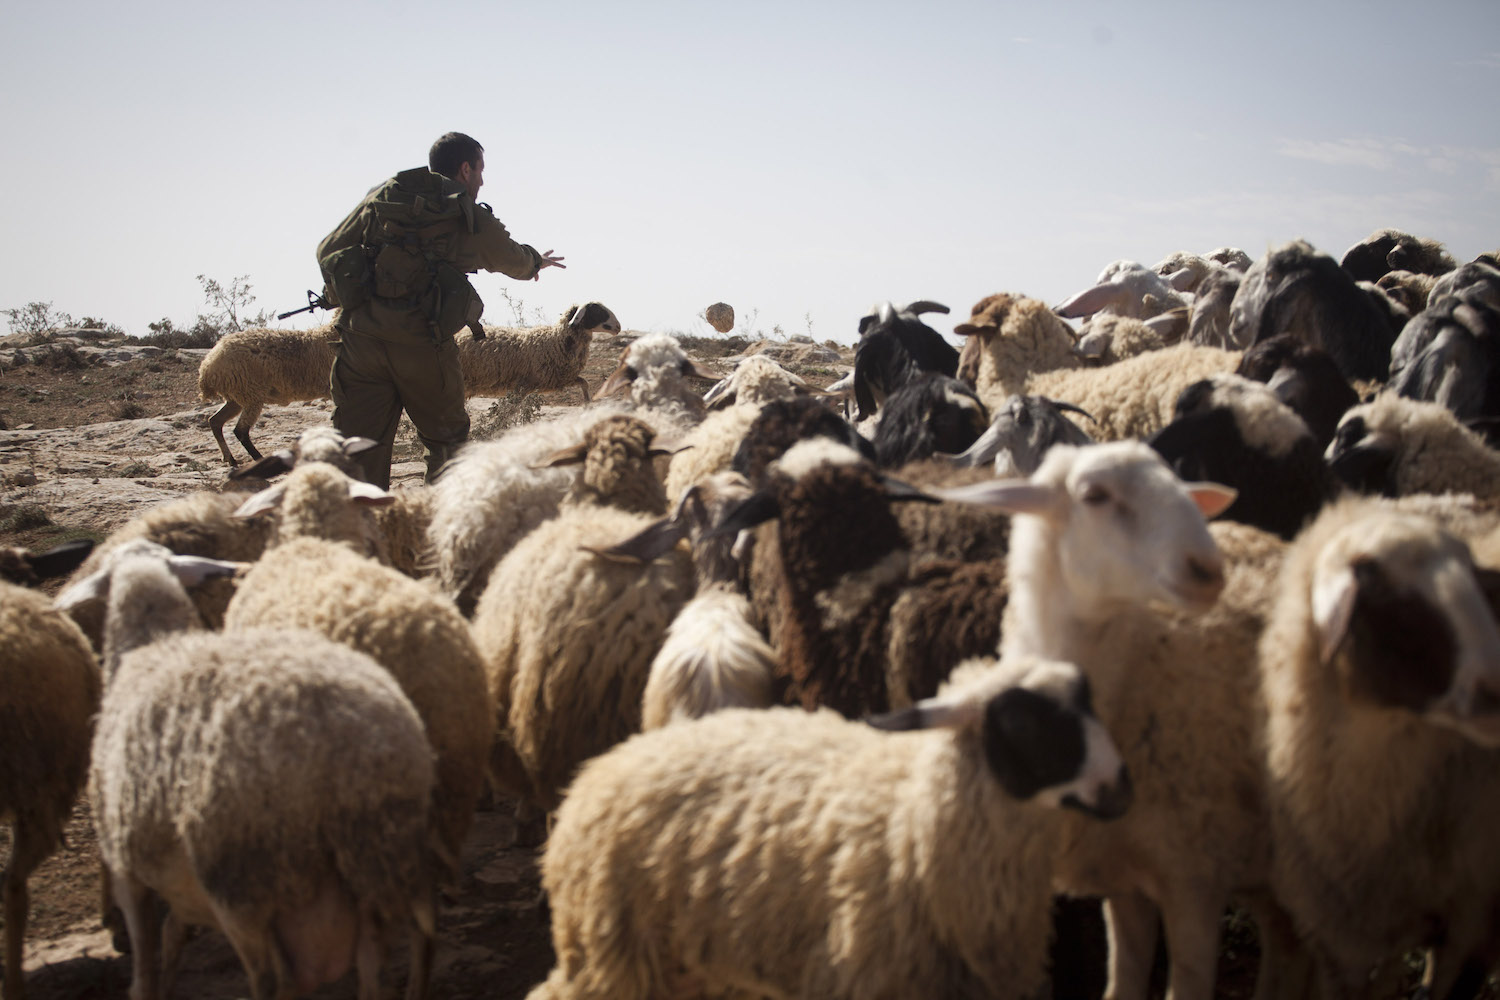 An Israeli solider throws stones at sheep to disperse them in Umm al Arayes, South Hebron Hills, West Bank, January 26, 2013. (Oren Ziv/Activestills.org)